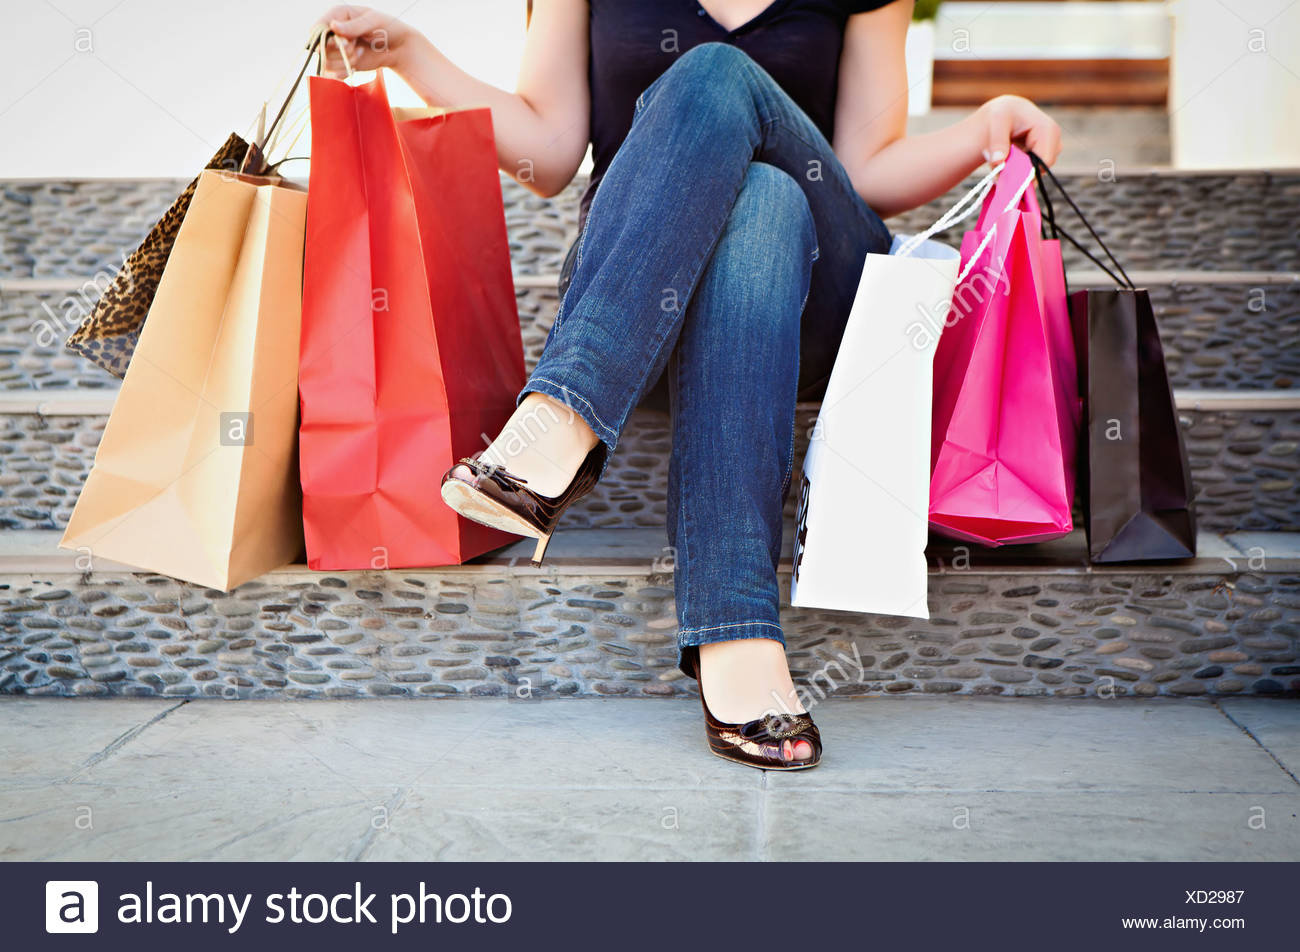 USA, California, Lawndale, Woman sitting on steps with shopping bags - Stock Image